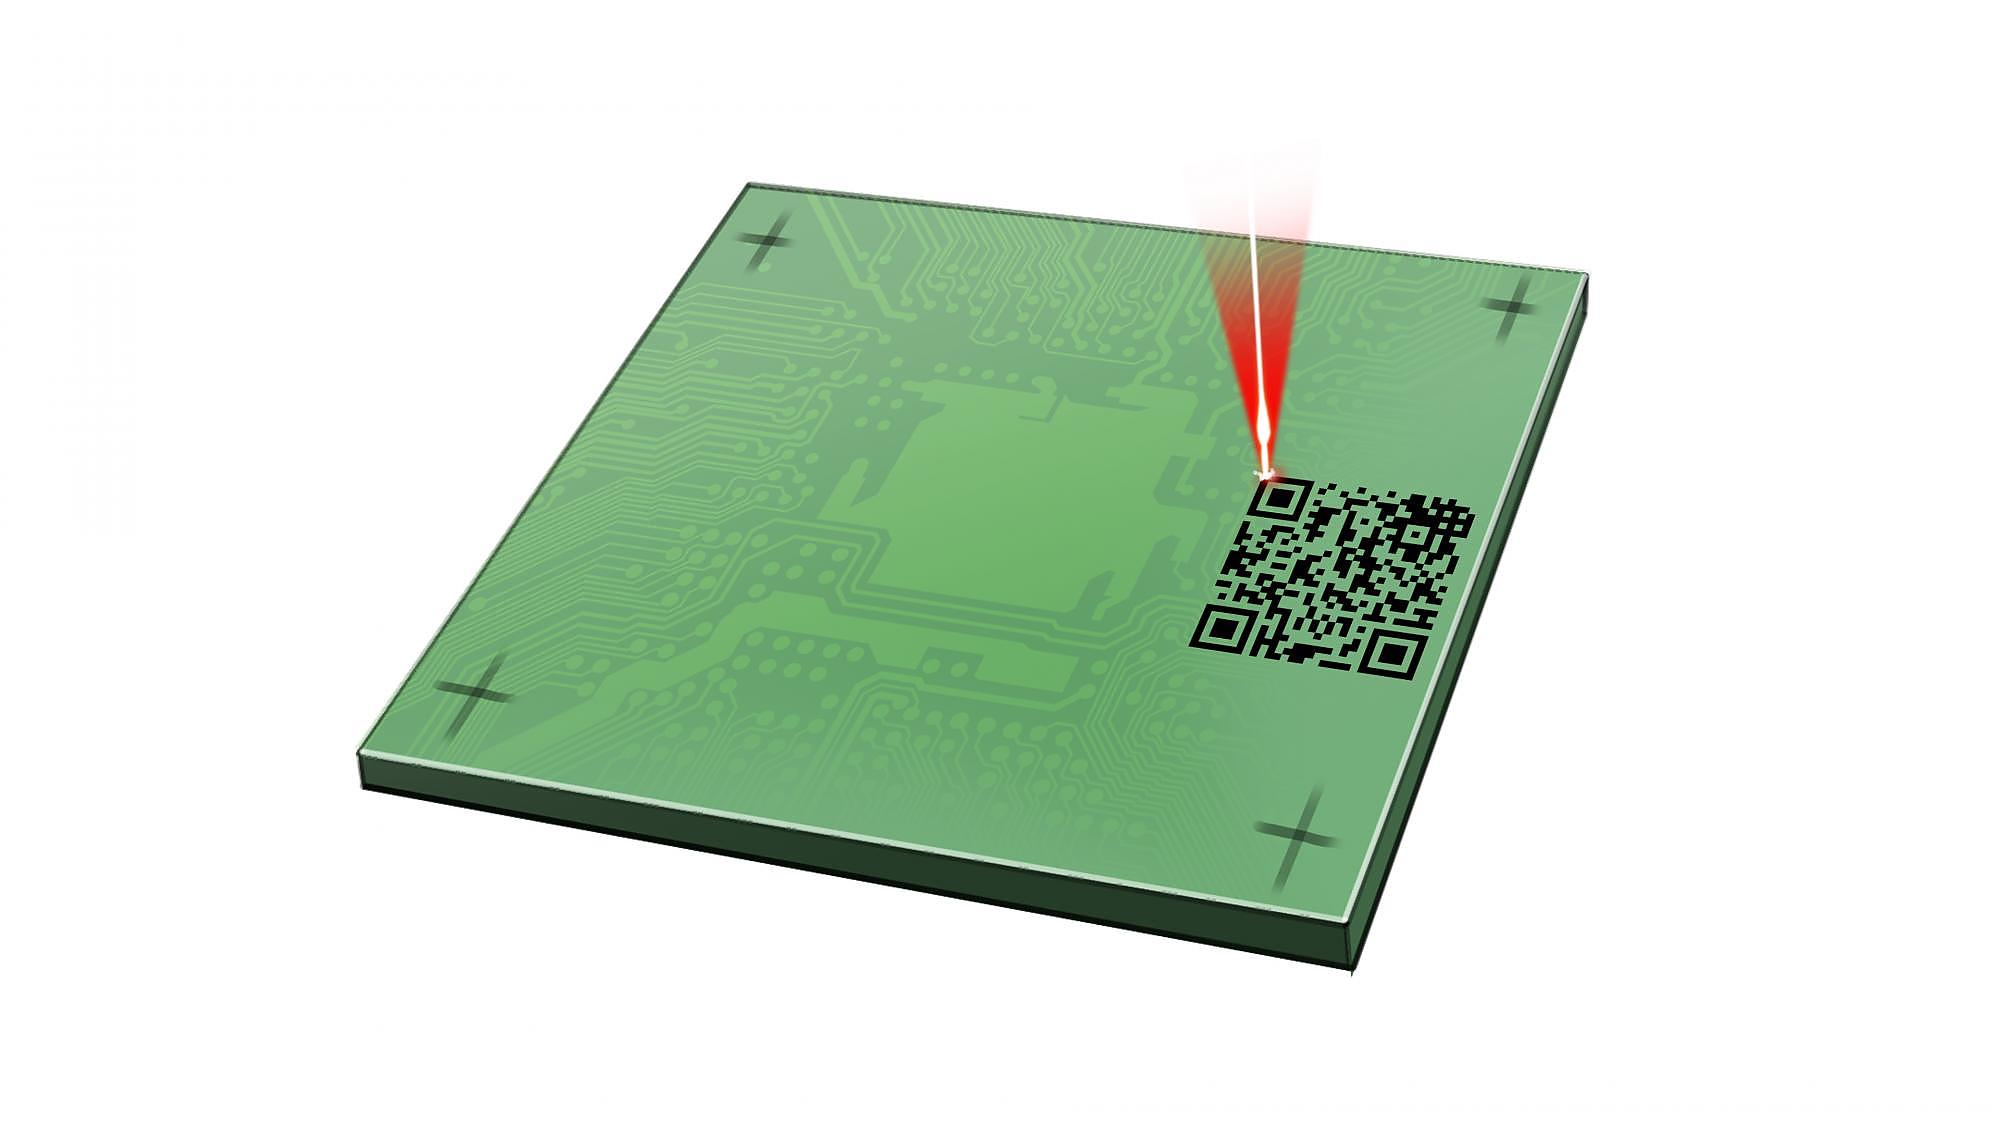 Laser Marking on PCB